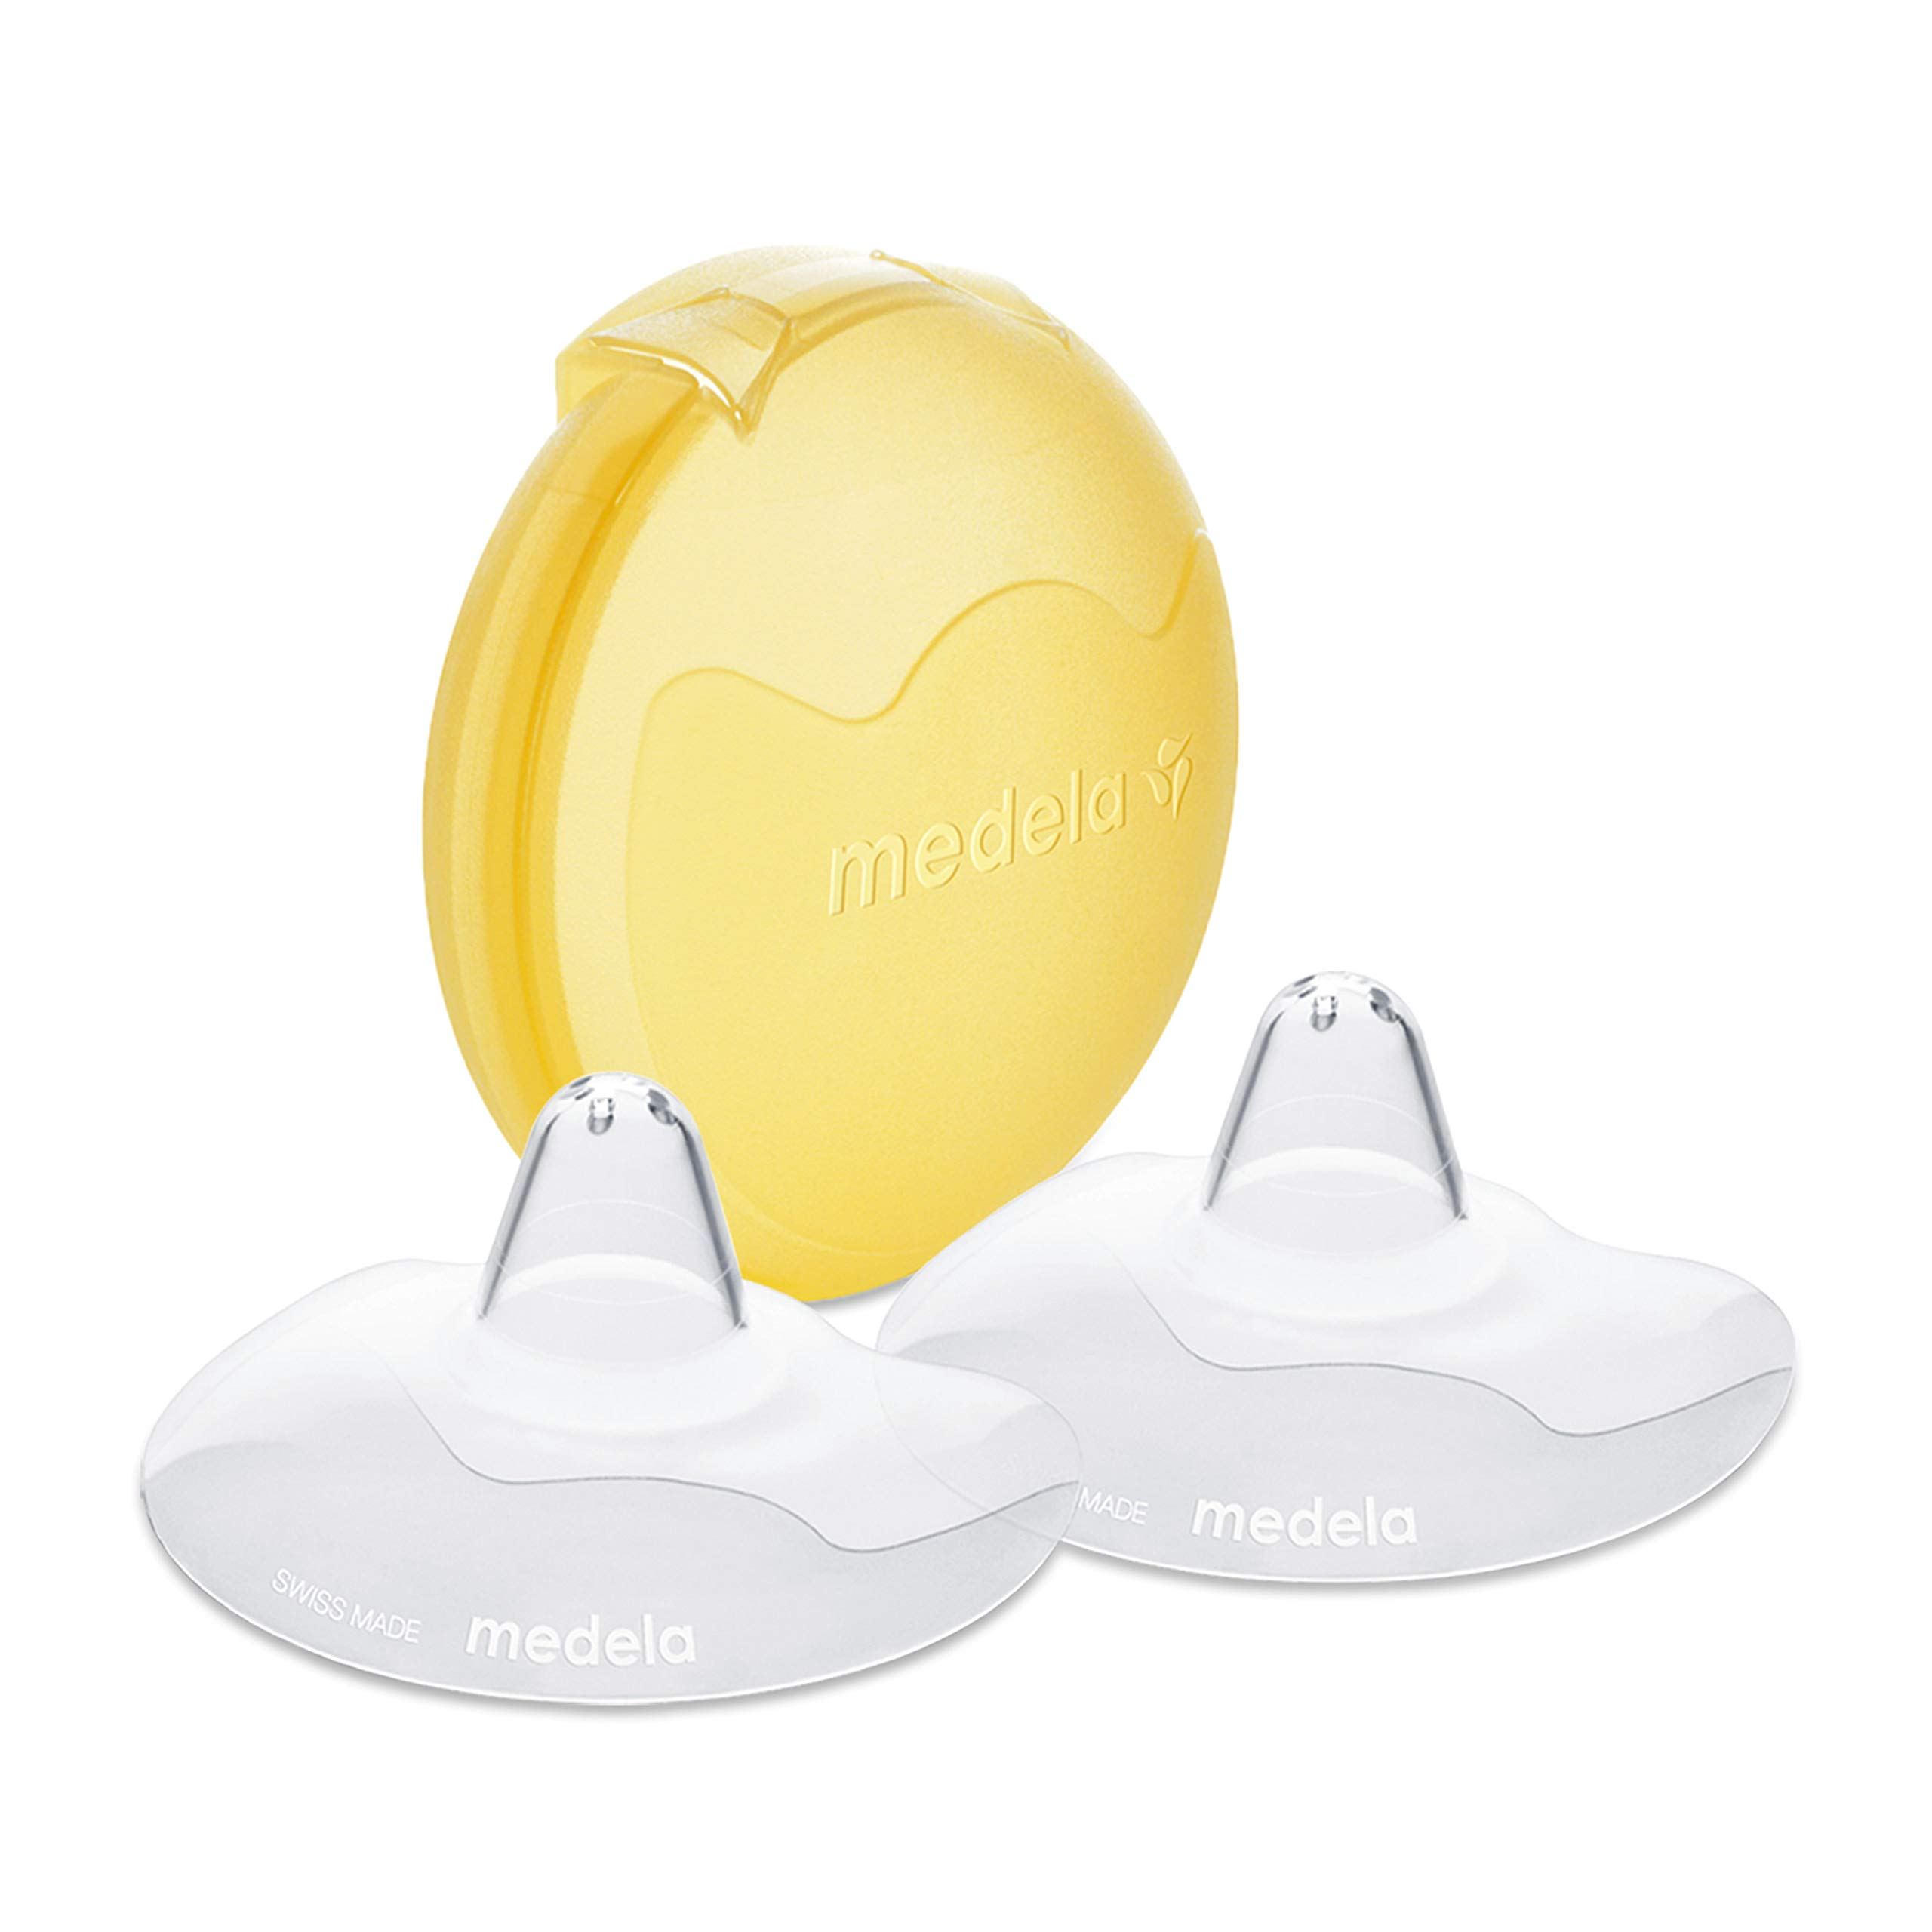 Medela Contact Nipple Shield for Breastfeeding, 16mm Extra Small Nippleshield, For Latch Difficulties or Flat or Inverted Nipples, 2 Count with Carrying Case, Made Without BPA by Medela